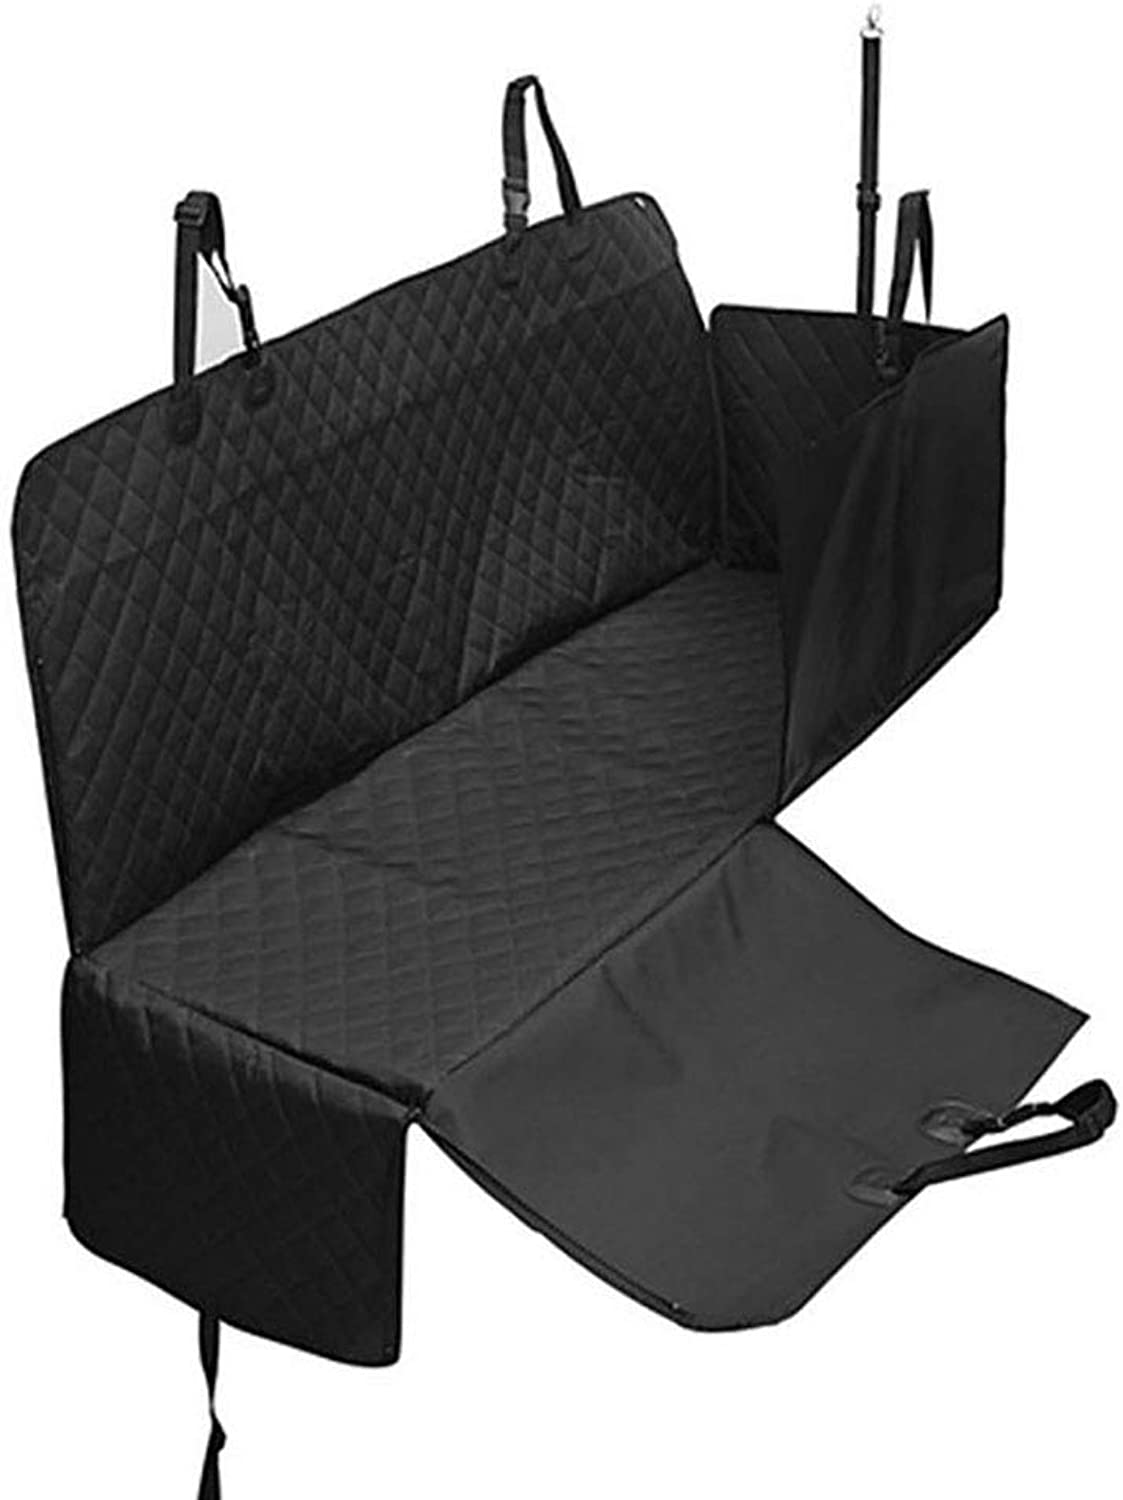 FXQIN Dog Car Seat Covers,Dog Seat Cover Pet Seat Cover For Cars, Trucks, And Suv  Black, 100% Waterproof, Scratch Proof & Nonslip Backing& Quilted & Hammock